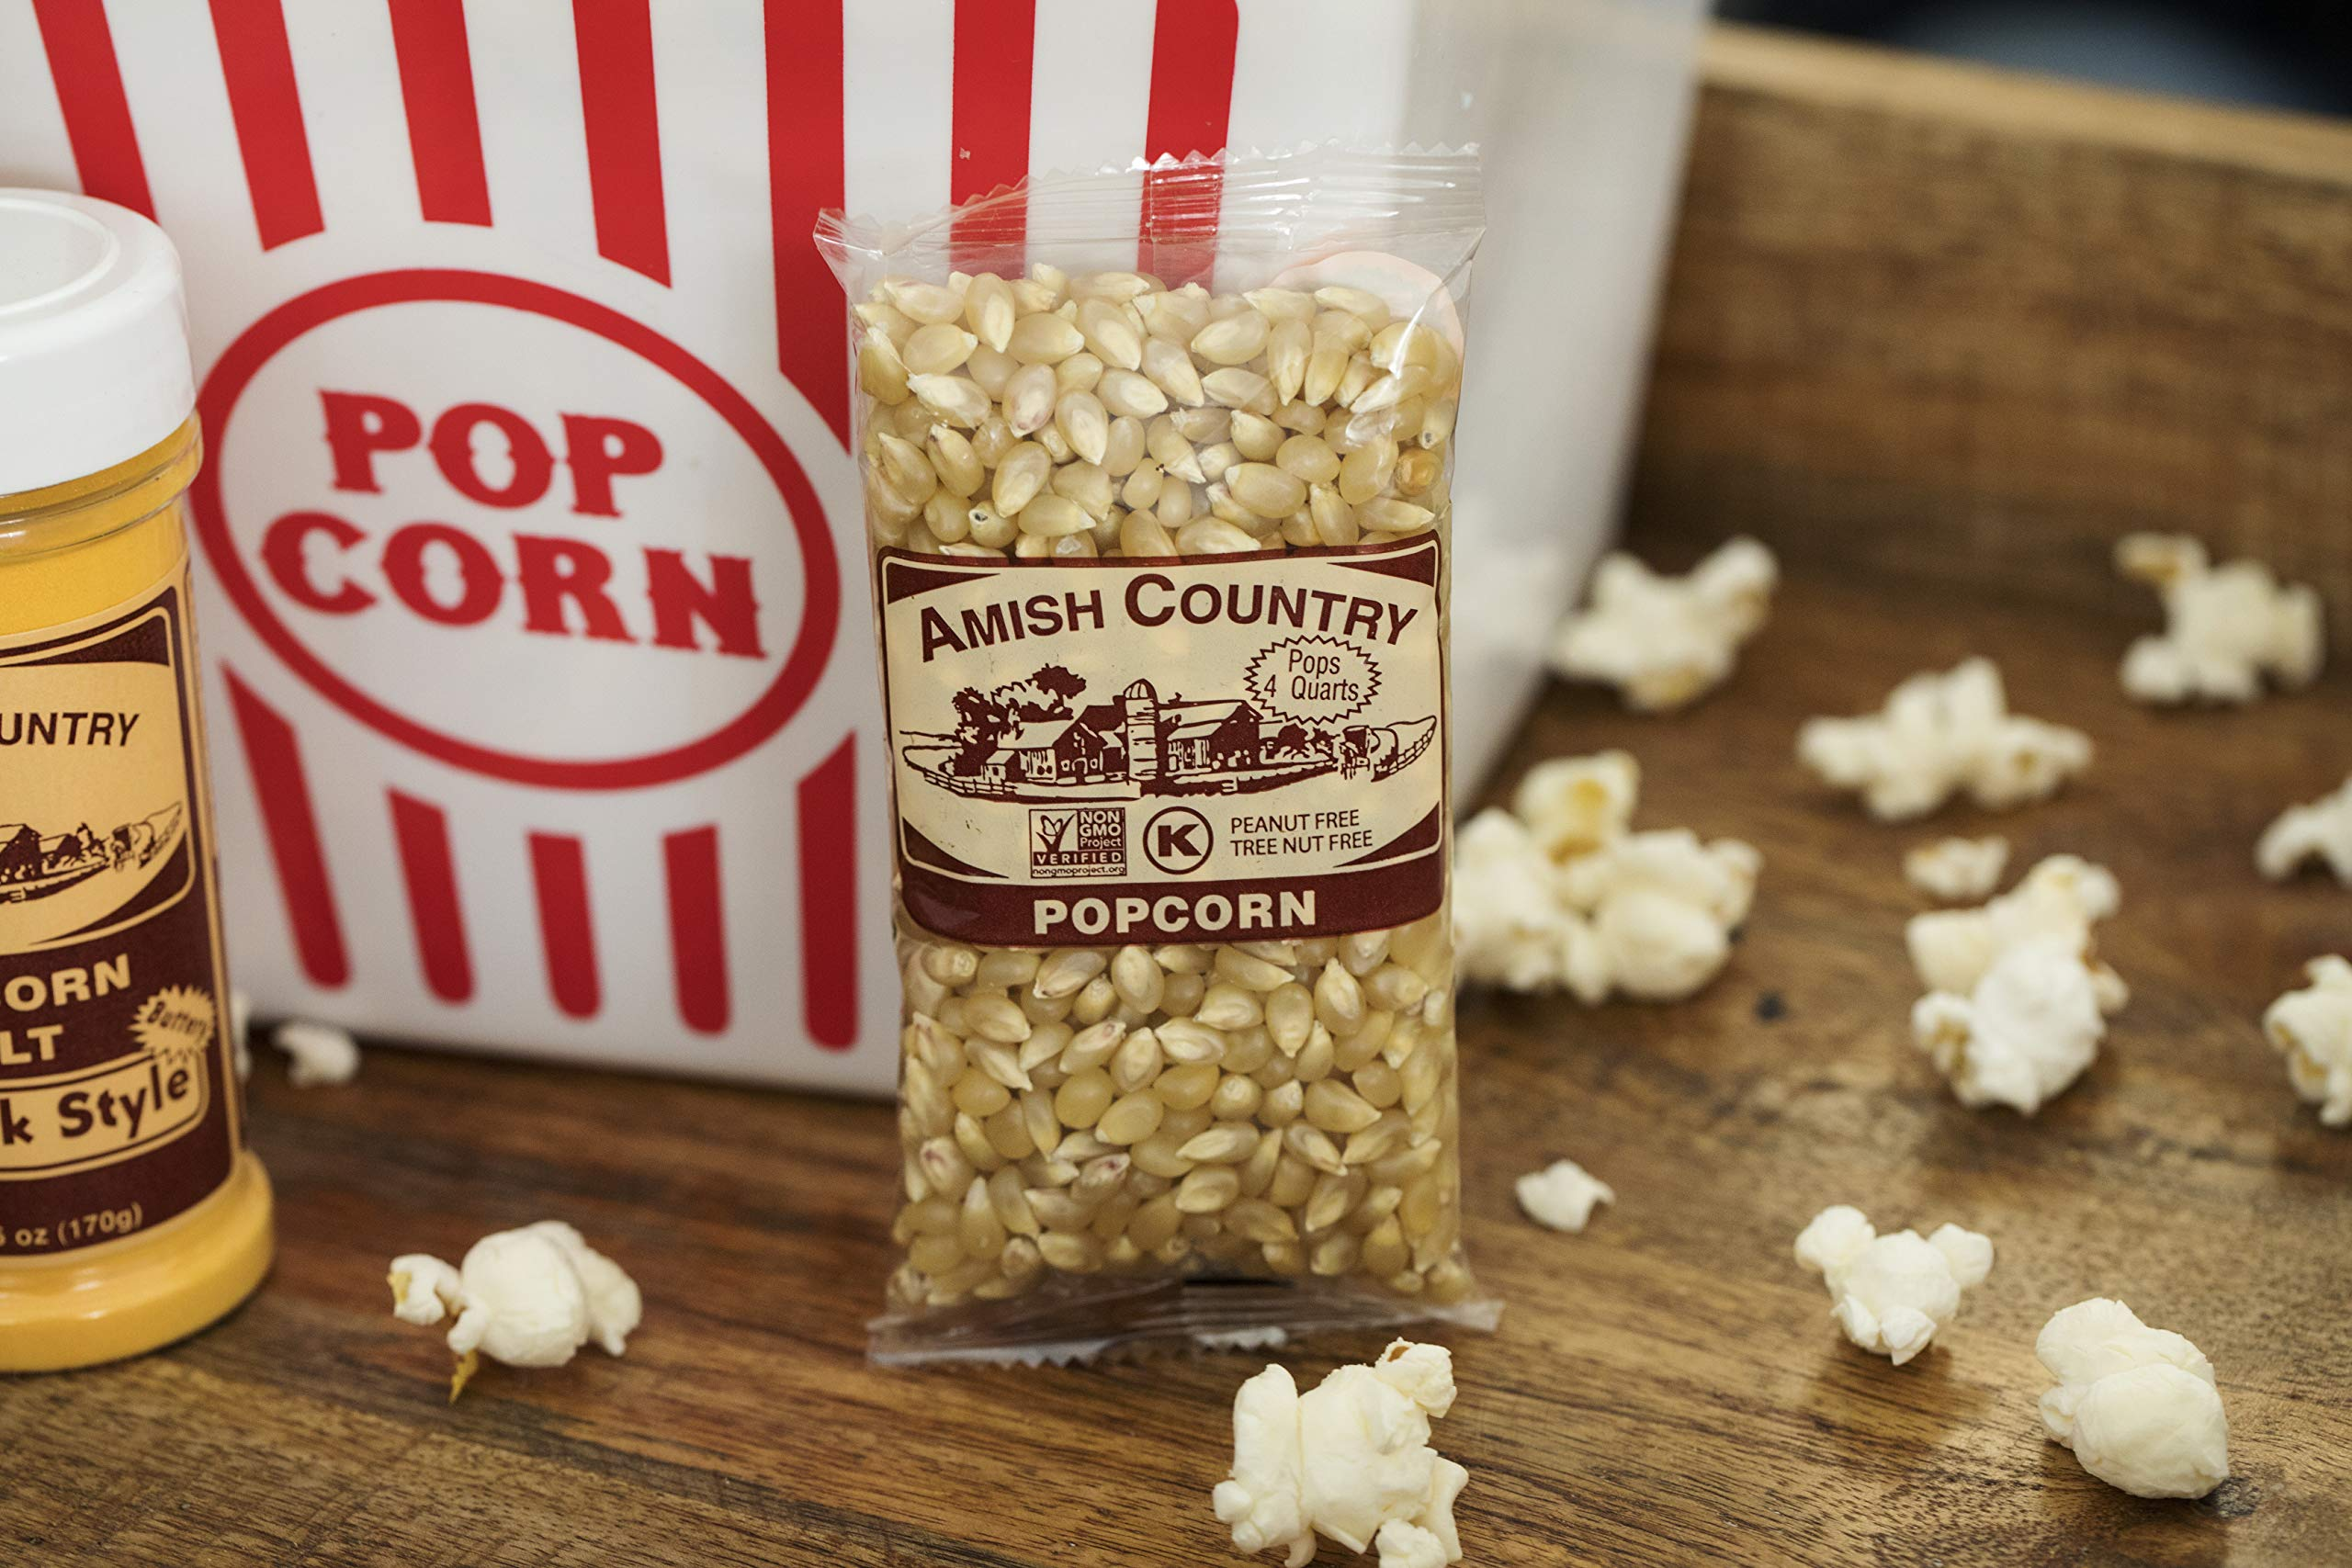 Amish Country Popcorn - Medium White Popcorn (4 Ounce - 24 Pack) Bags - Old Fashioned, Non GMO, and Gluten Free - with Recipe Guide by Amish Country Popcorn (Image #4)